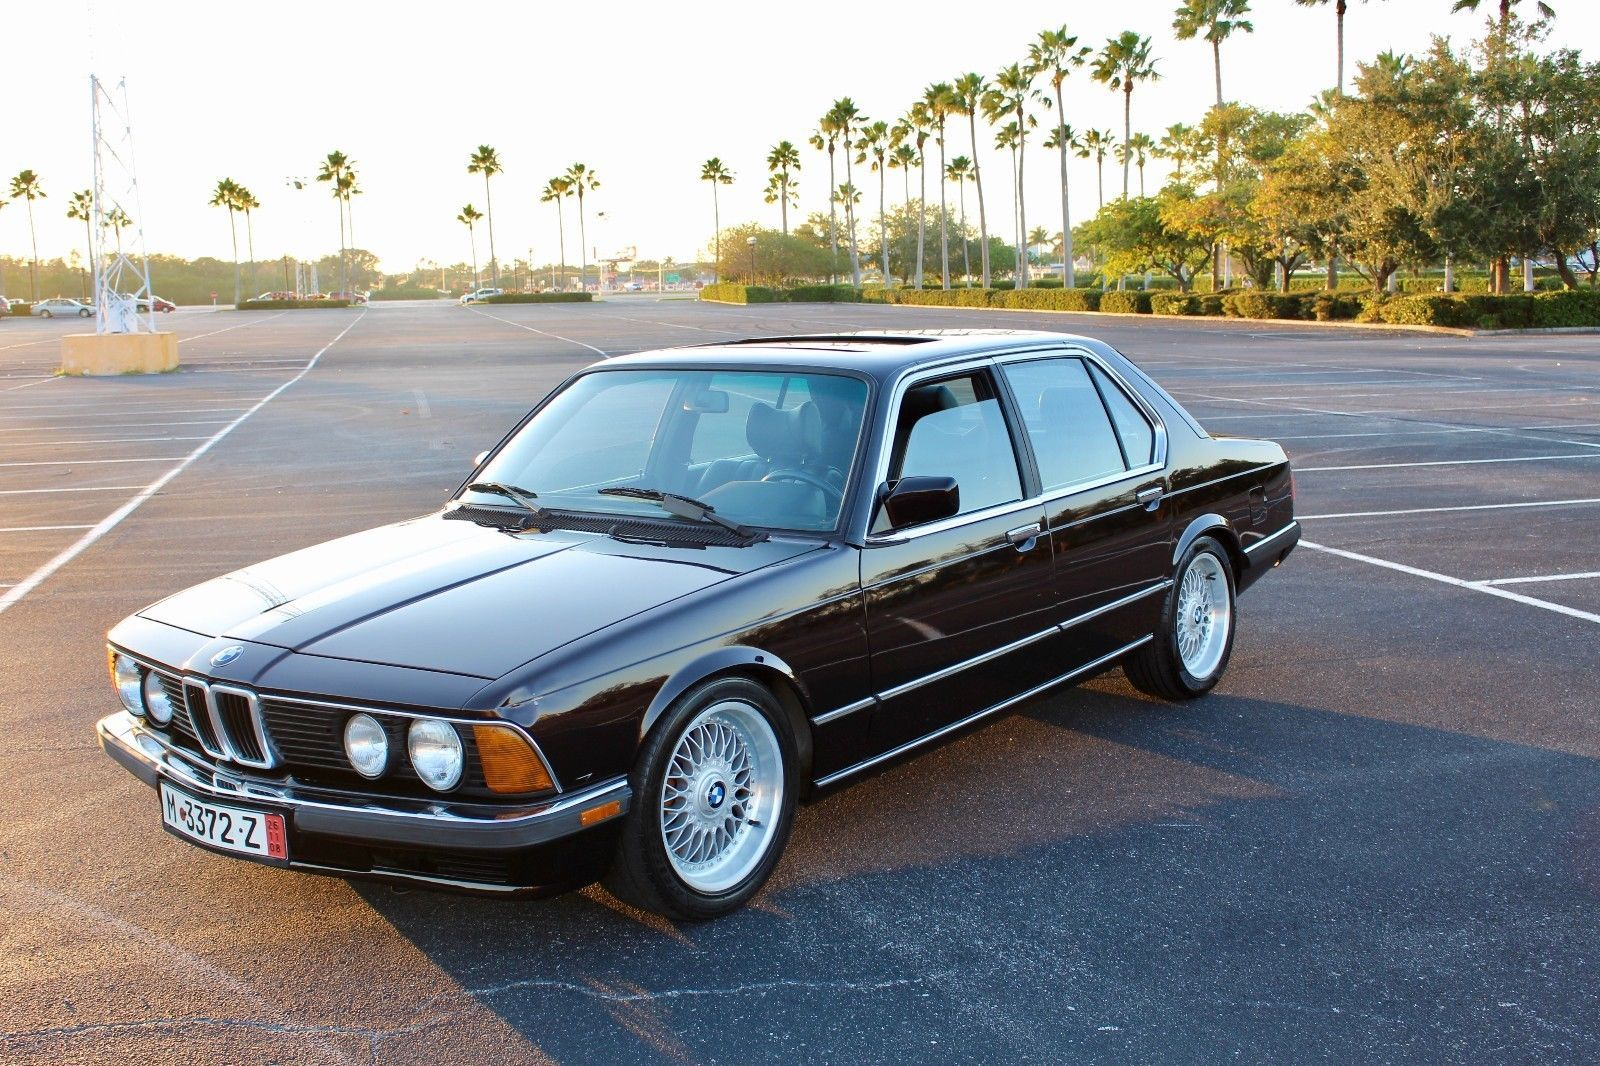 1985 BMW 7-Series Luxury e23 model Unique 1985 BMW e23 735i Auto Clean  Title Lower Miles OEM Plus